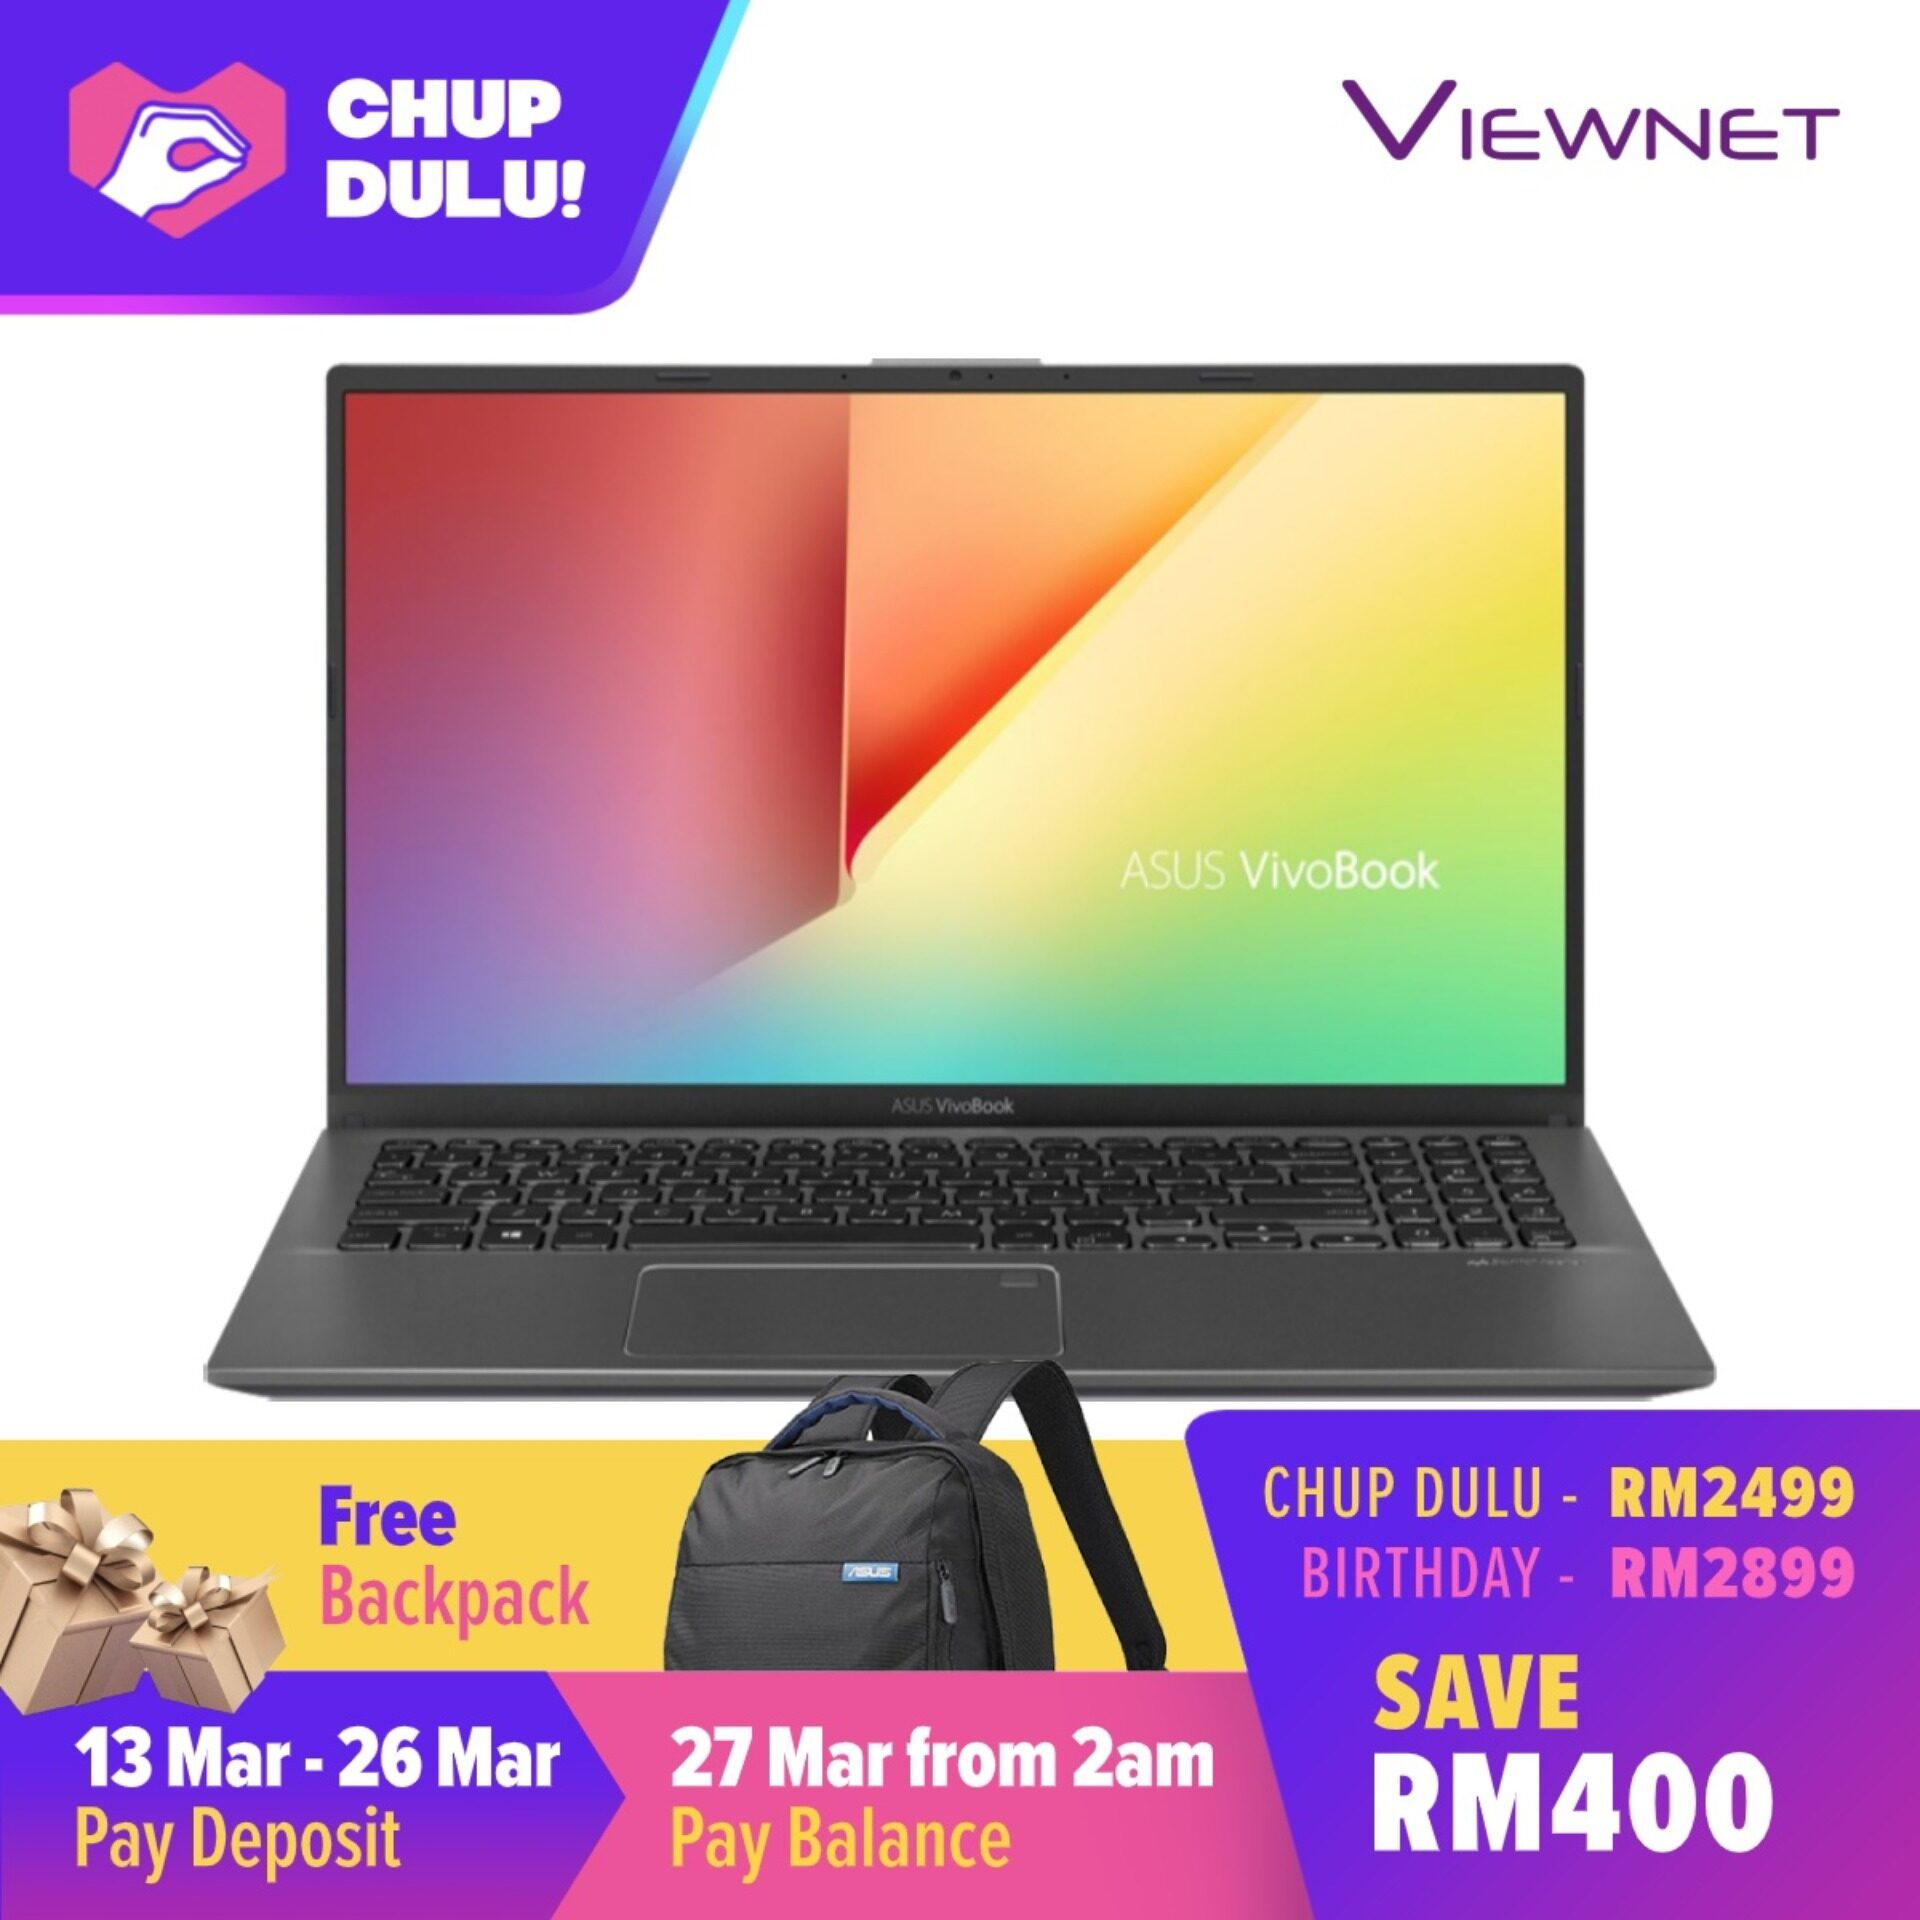 [CHUP DULU] Asus Vivobook 15.6  FHD Gaming Laptop A512F-LBQ587T, Intel Core I5-10210U, 4GB DDR4, 512GB SSD, Nvidia MX250 2GB, Windows 10 Malaysia